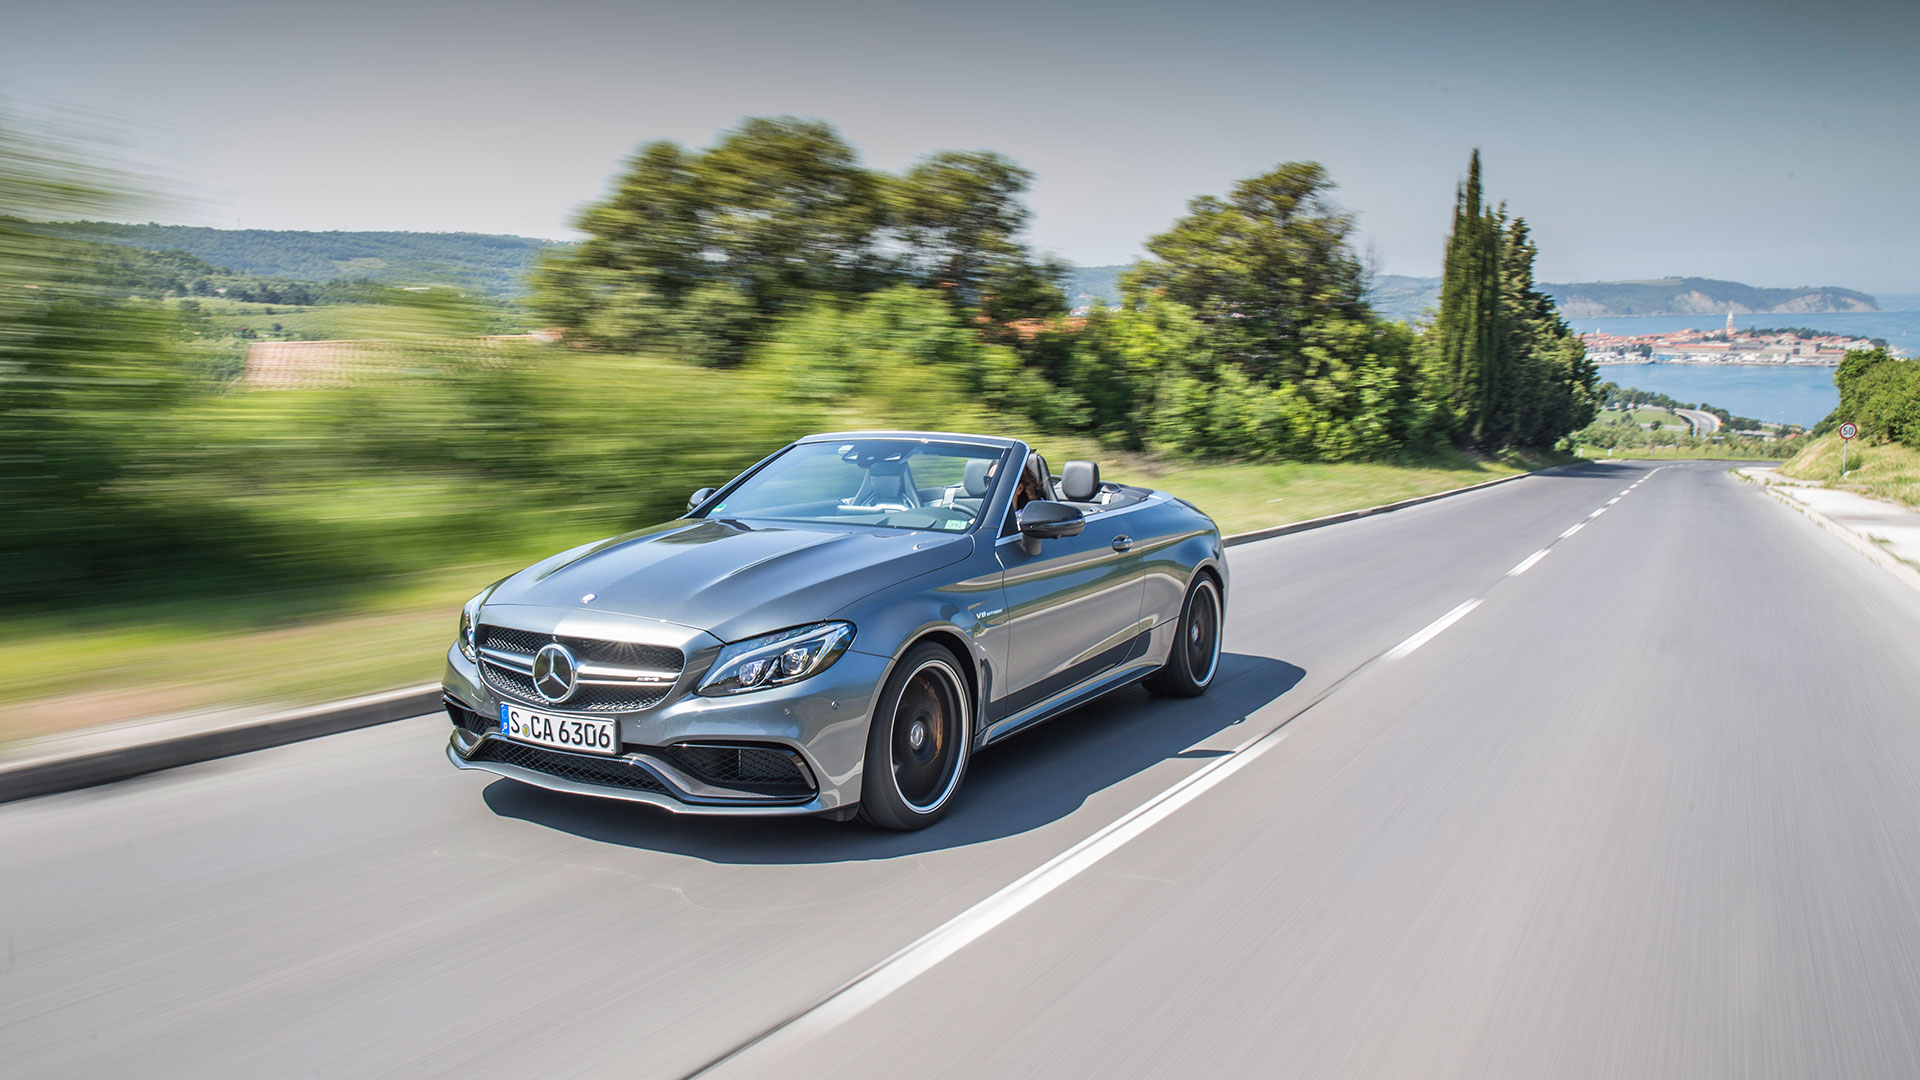 Mercedes c300 cabriolet and mercedes amg c63 s cabriolet for Barrier mercedes benz